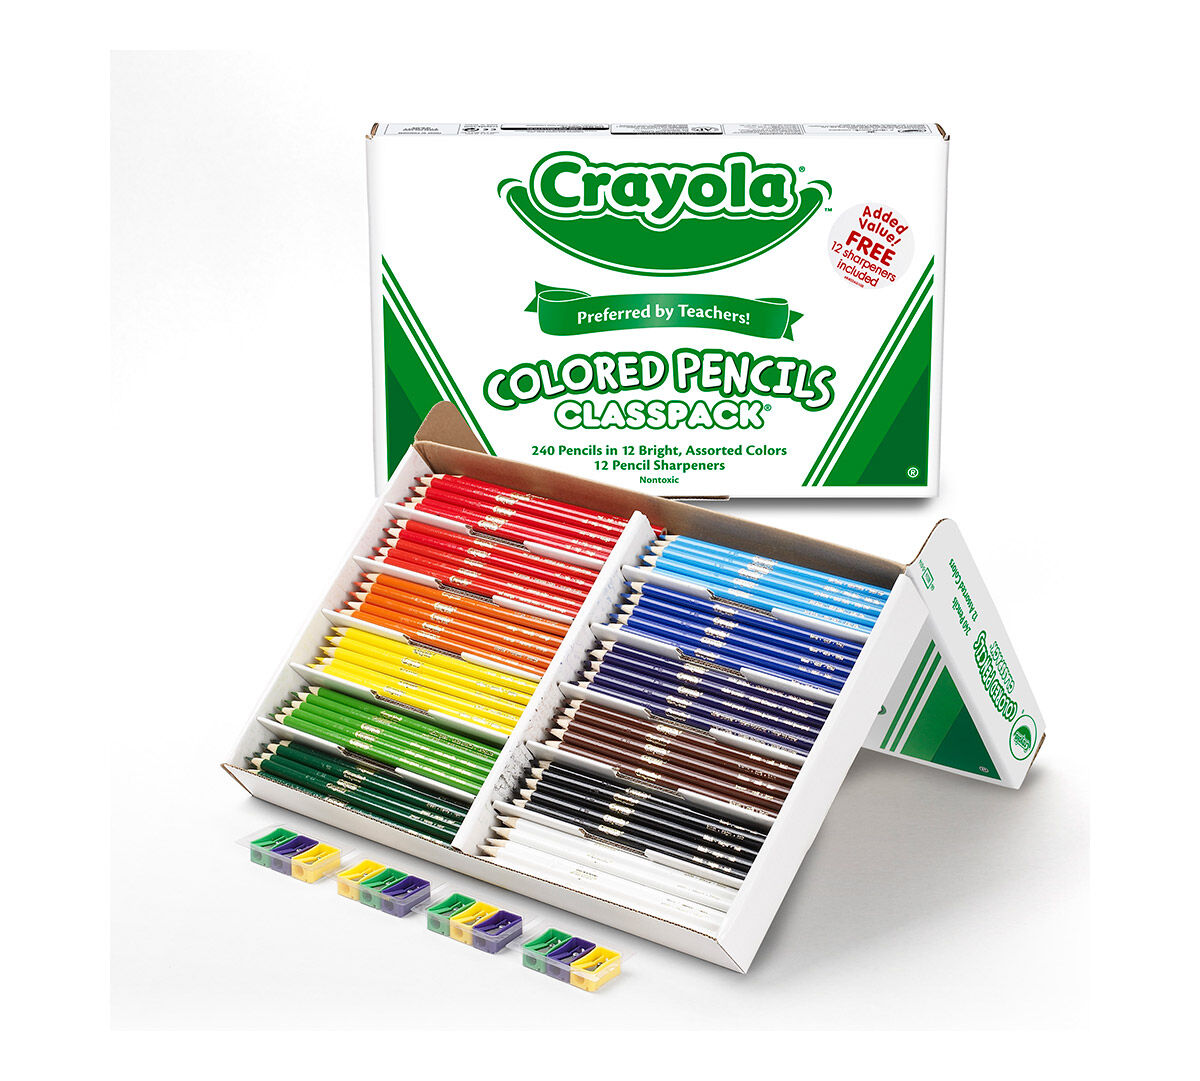 This bulk-size set of colored pencils is an economical way to supply an entire class.  Comes with 12 colors and 12 sharpeners.